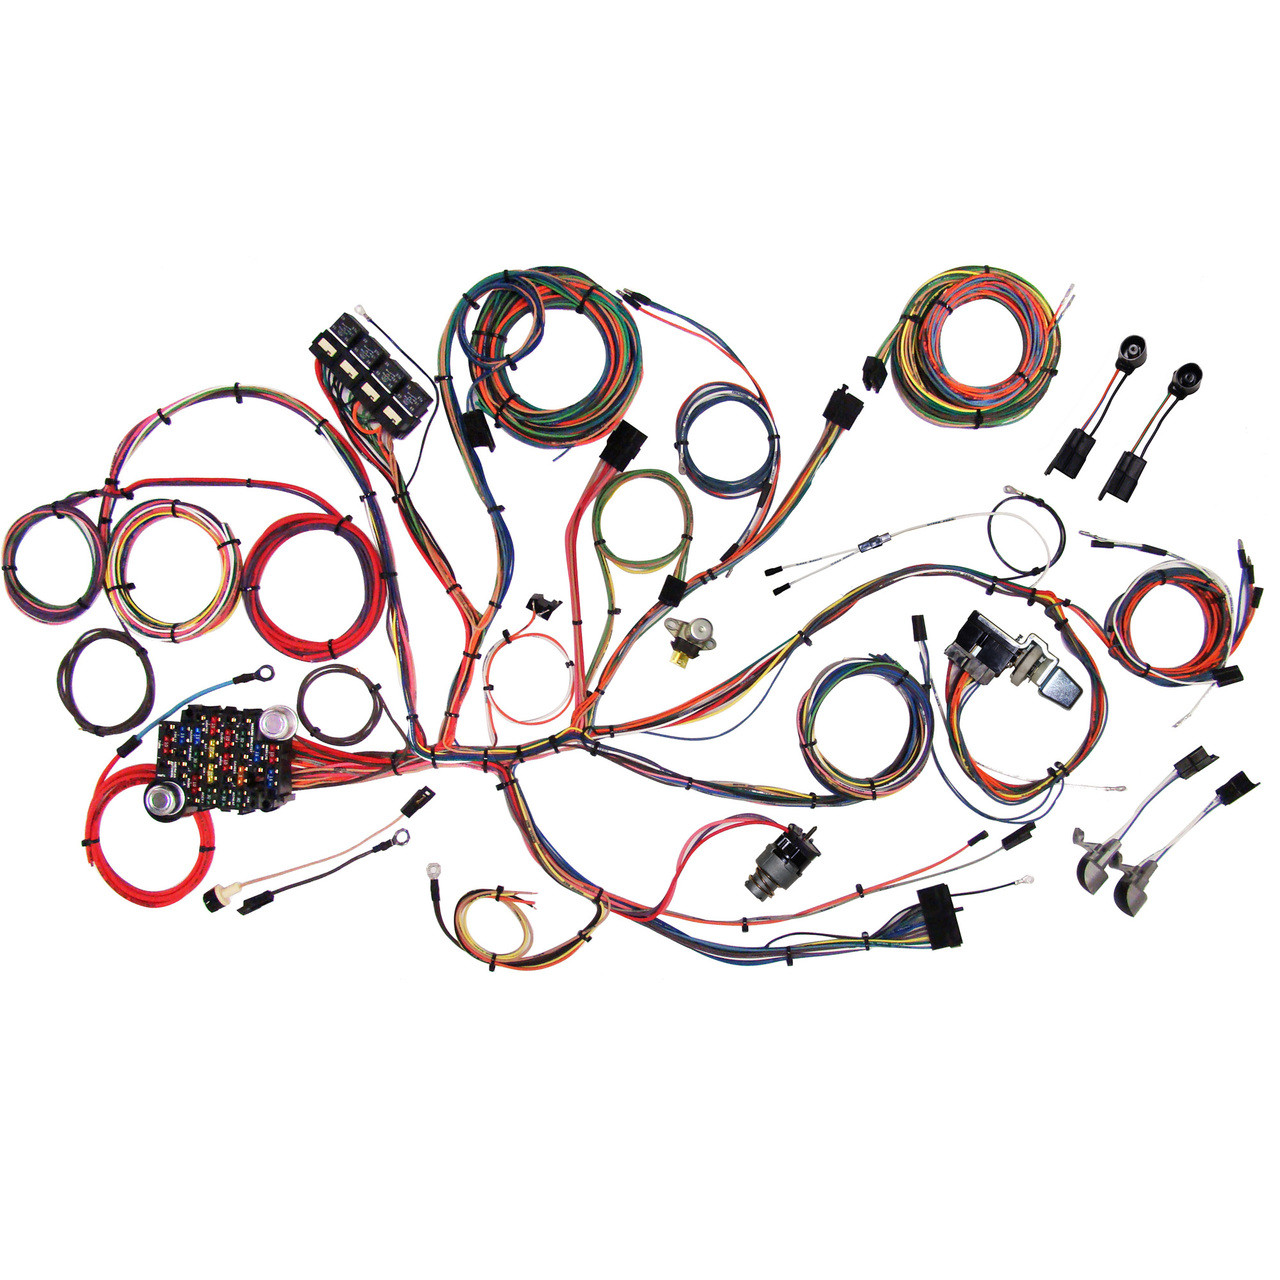 1964 Ford Falcon Ignition Wiring Diagram Together With 1970 Ford